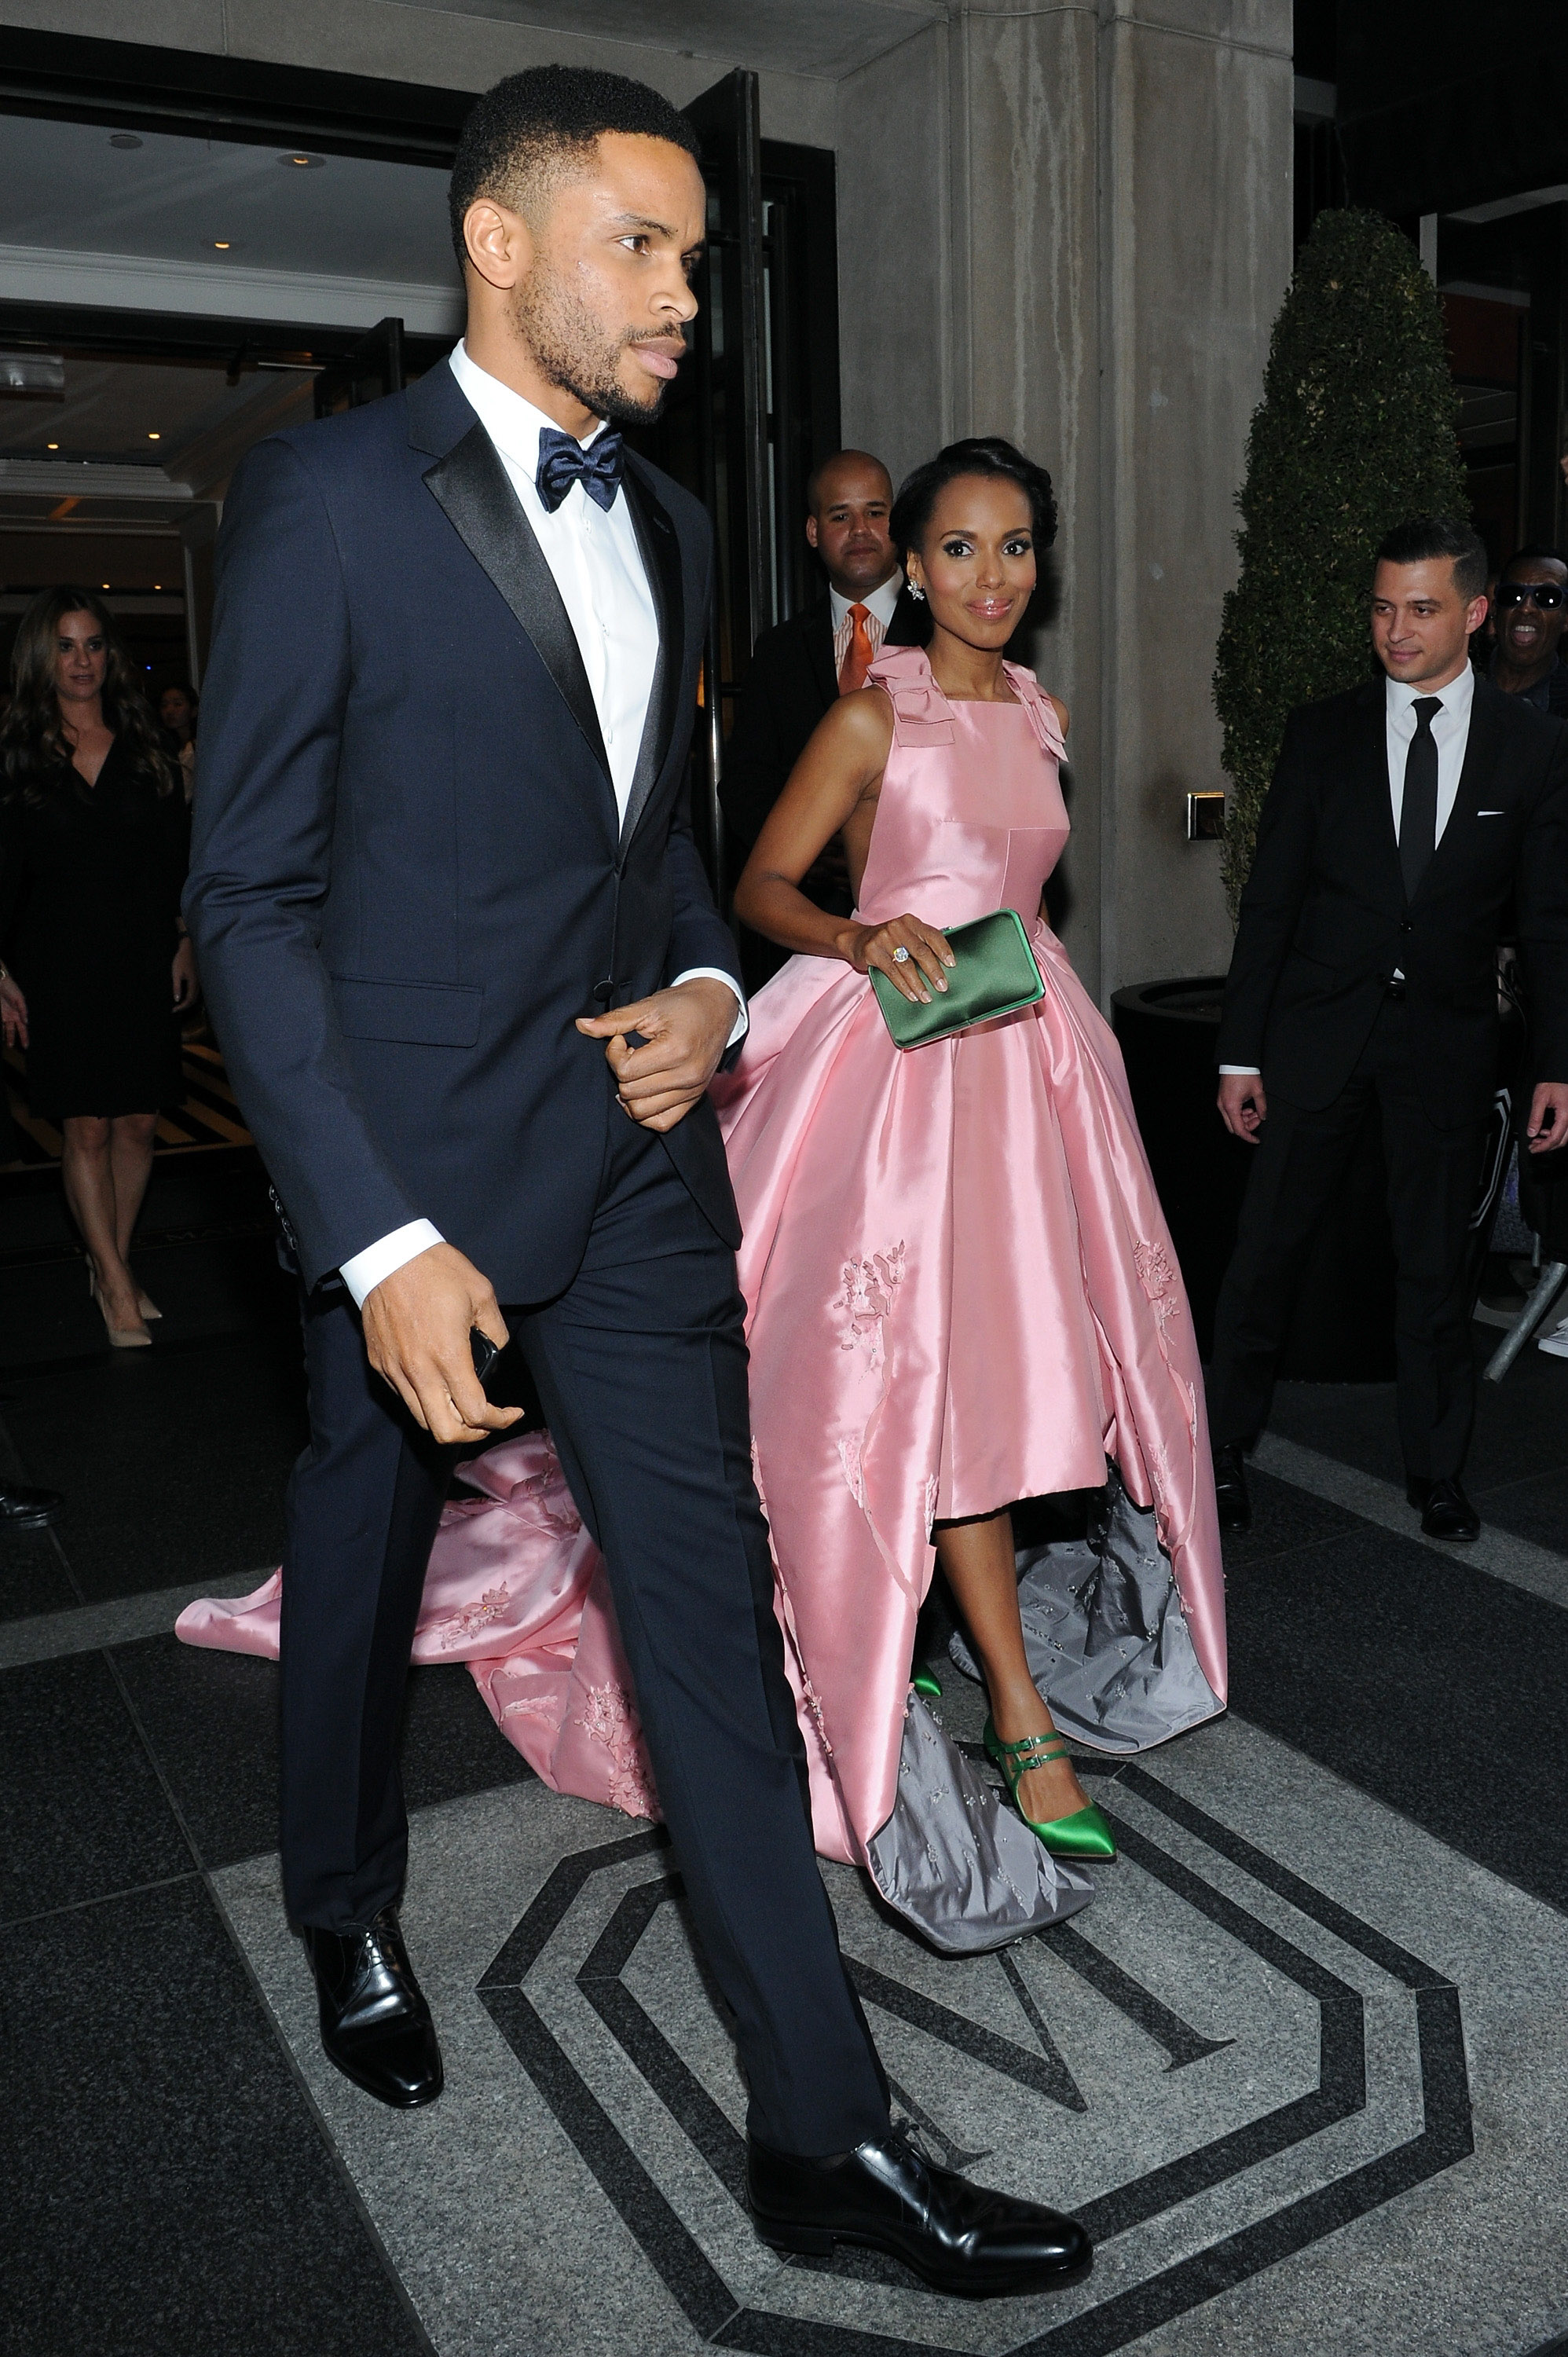 18. Kerry Washington - Age: 42Husband: Nnamdi Asomugha, 37Age Difference: 5 yearsYears Together: 7Kids: 2